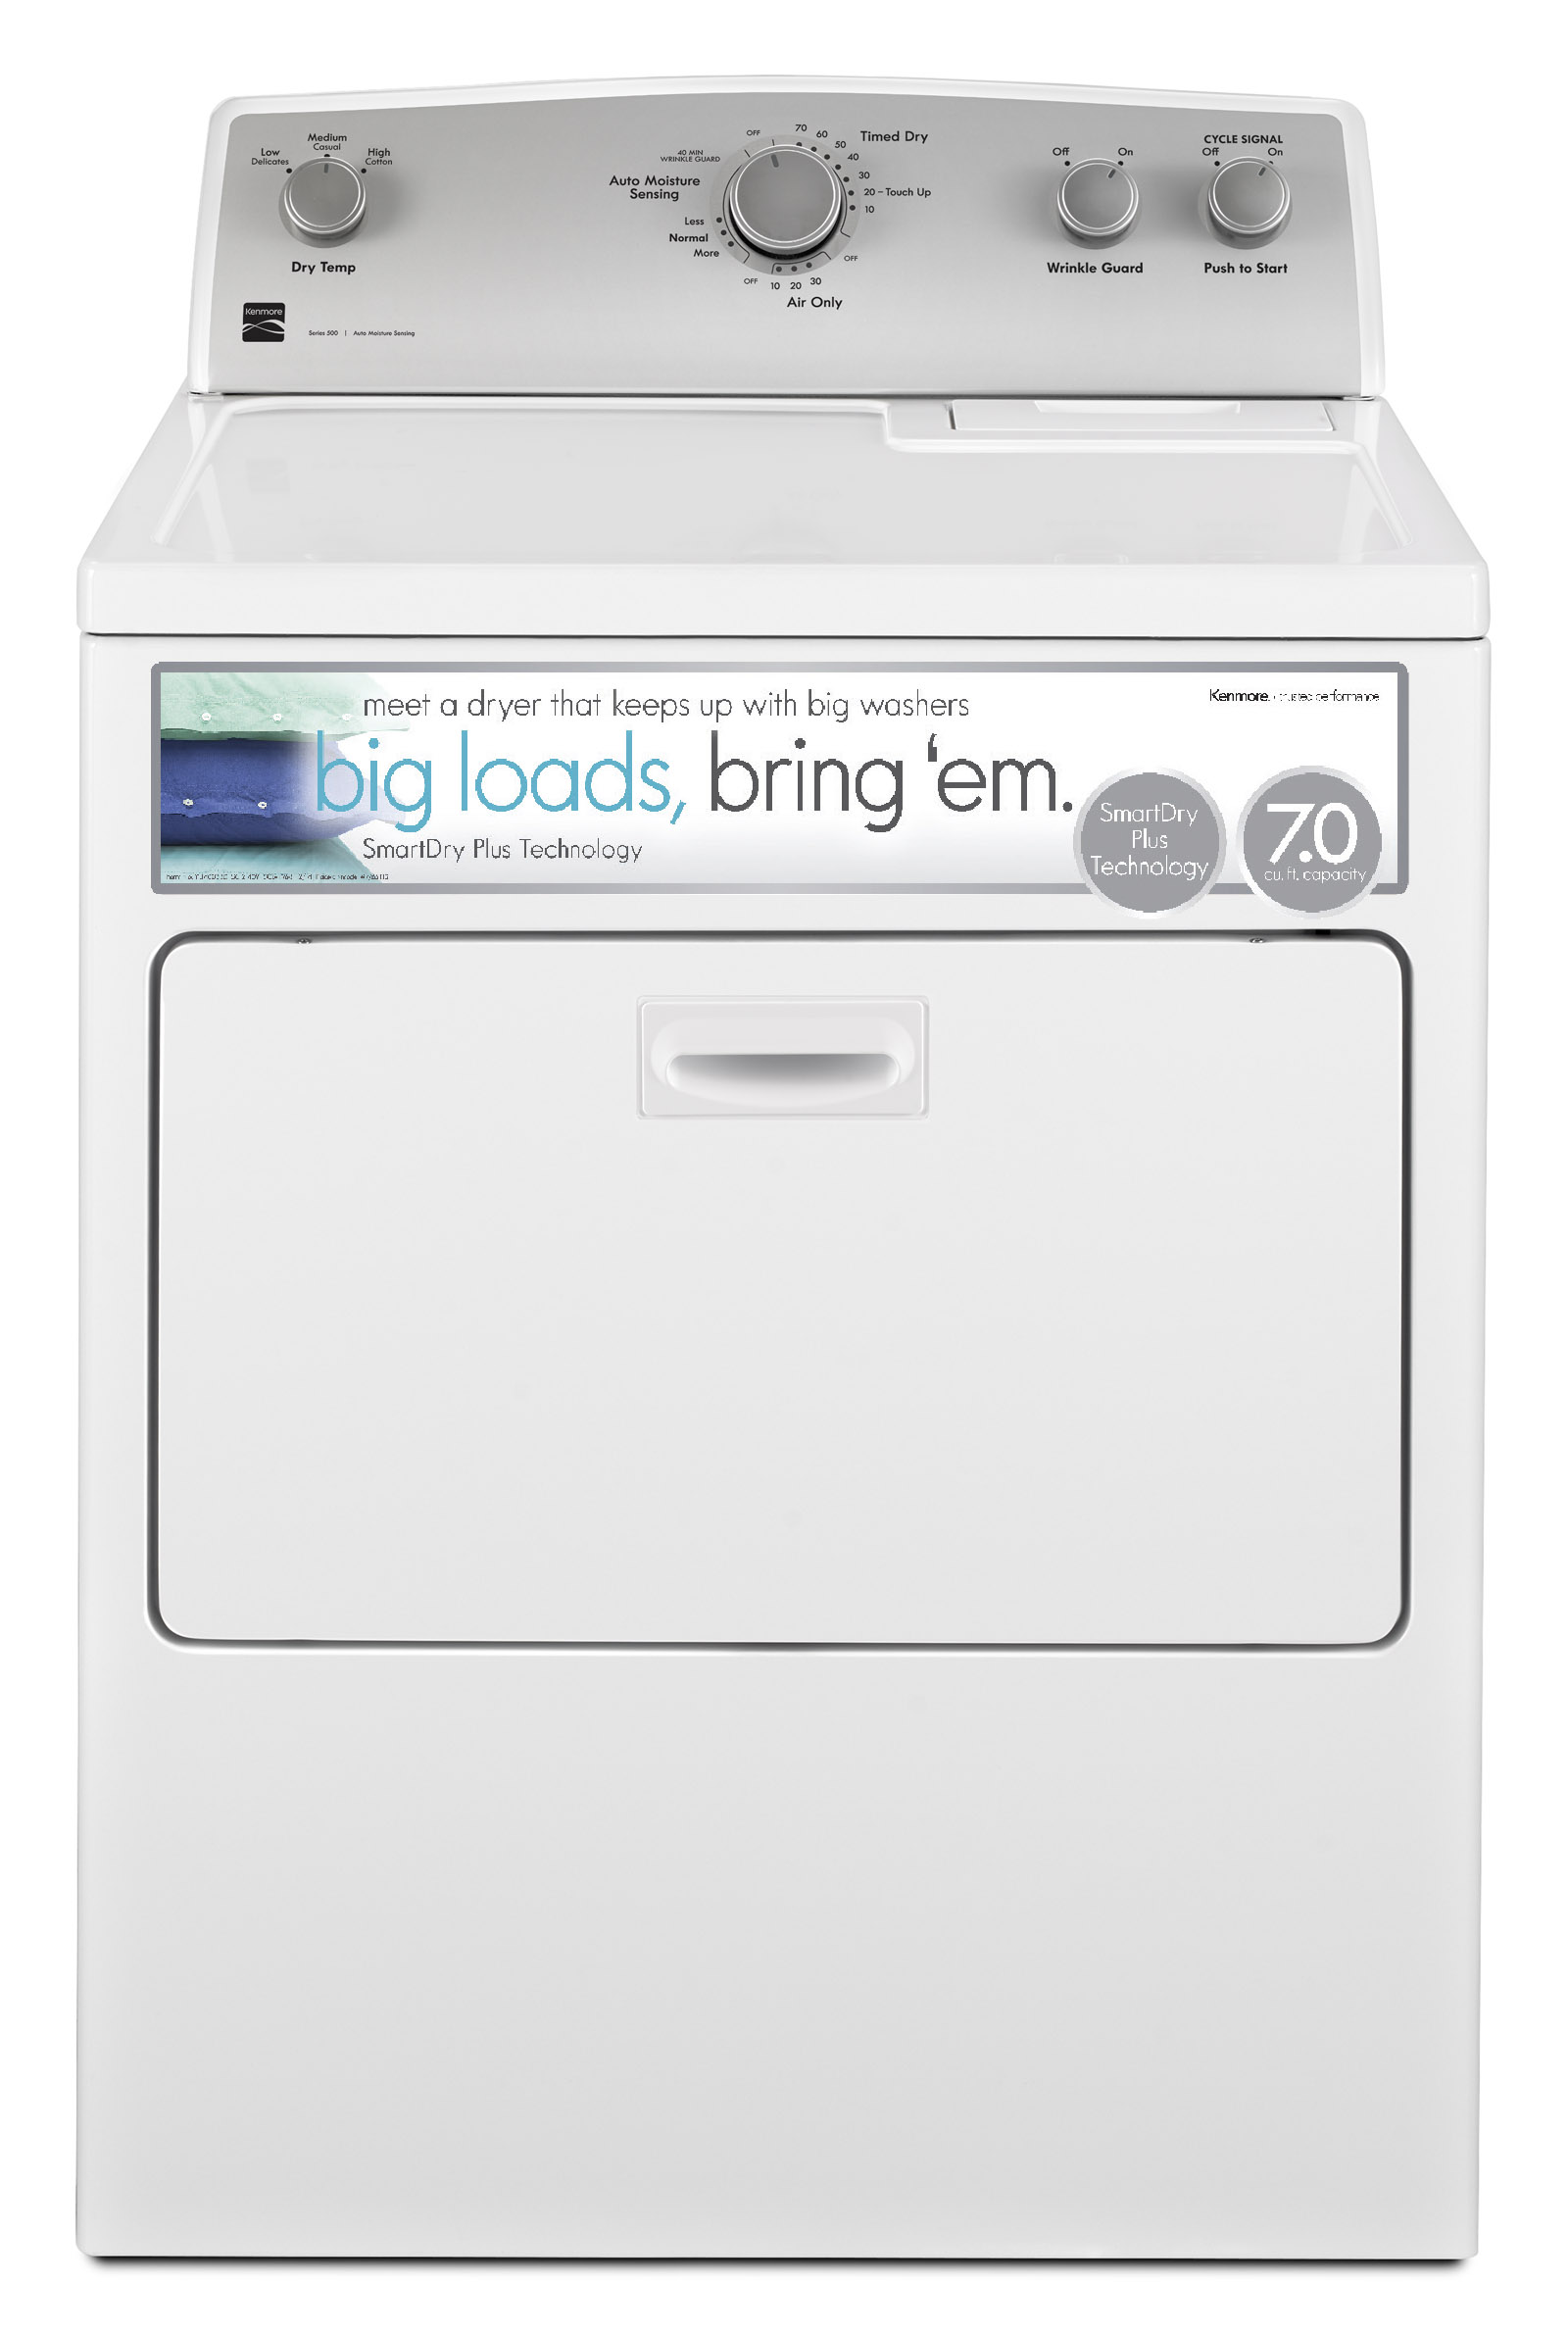 Kenmore 65132 7.0 cu. ft. Electric Dryer w/ SmartDry Plus Technology - White